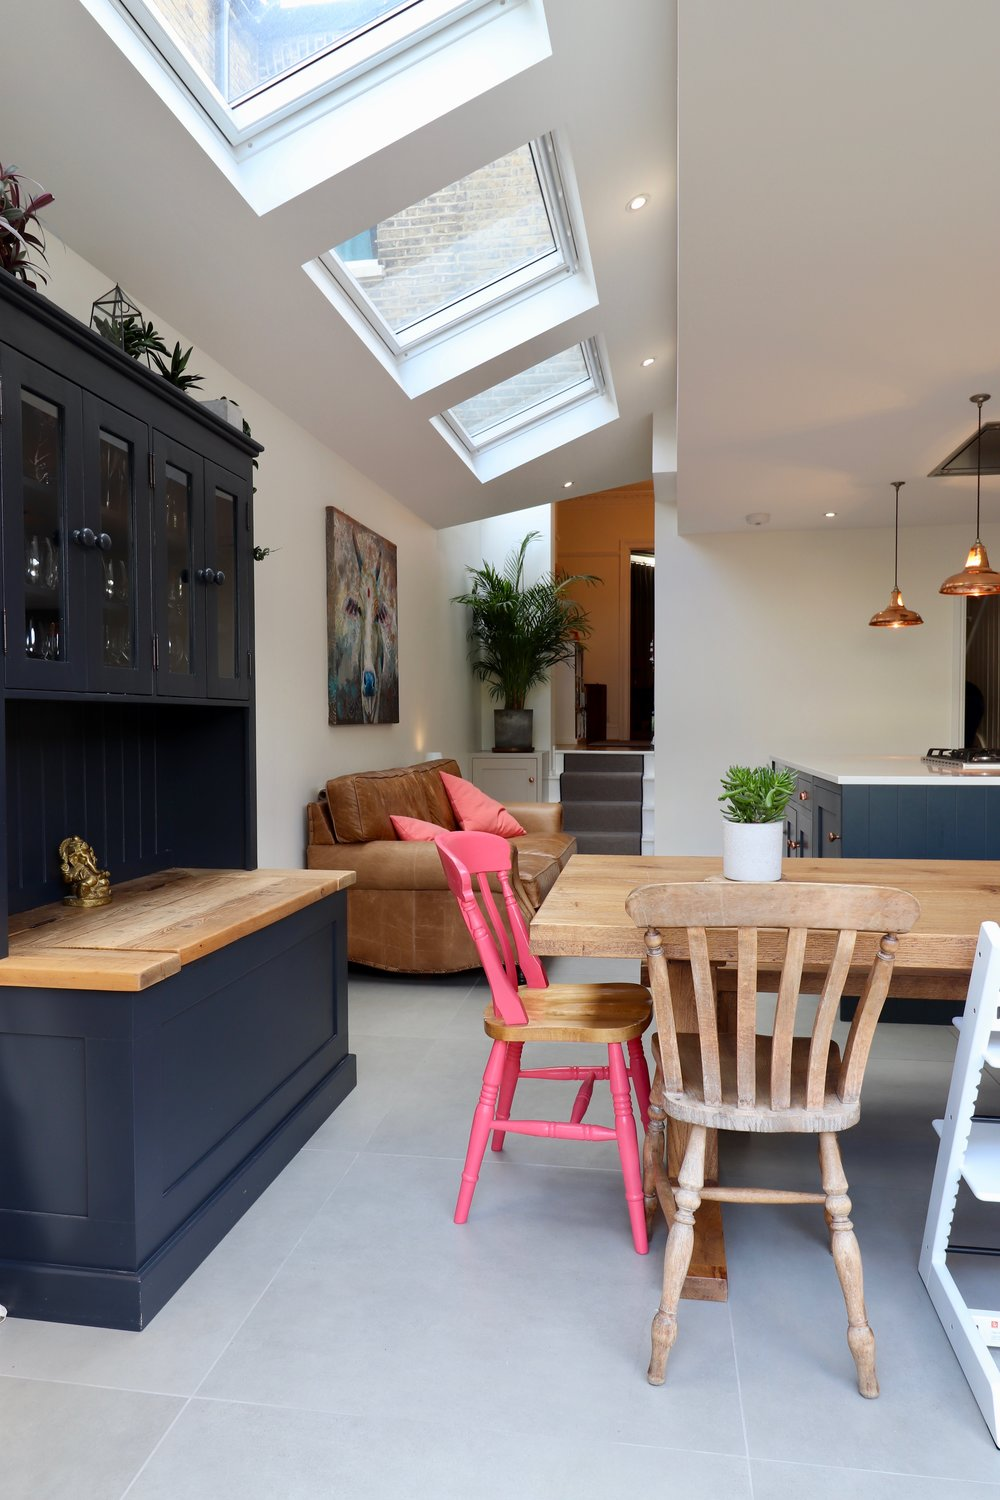 RENOVATION, SHAKER KITCHEN, DARK BLUE KITCHEN, WOOD COUNTERTOP.jpg